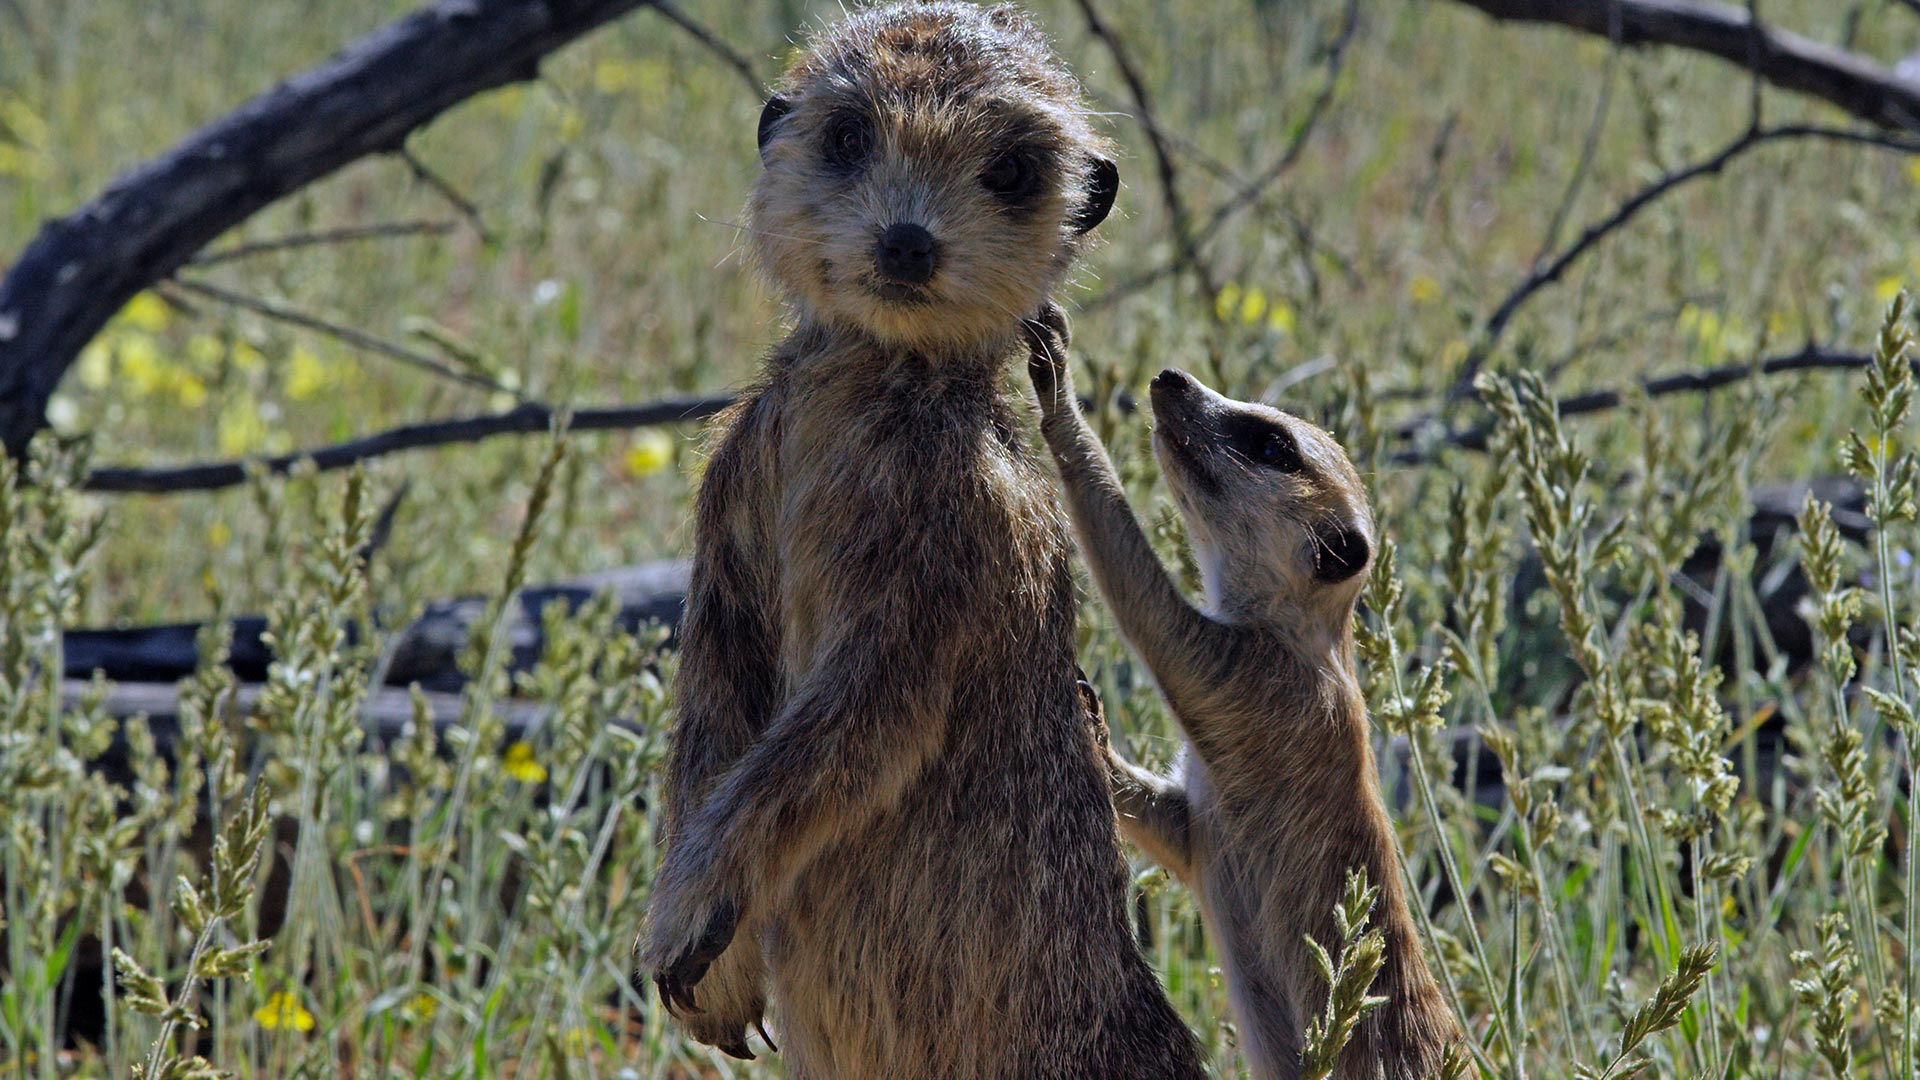 Spy Meerkat is being investigated by a young meerkat.